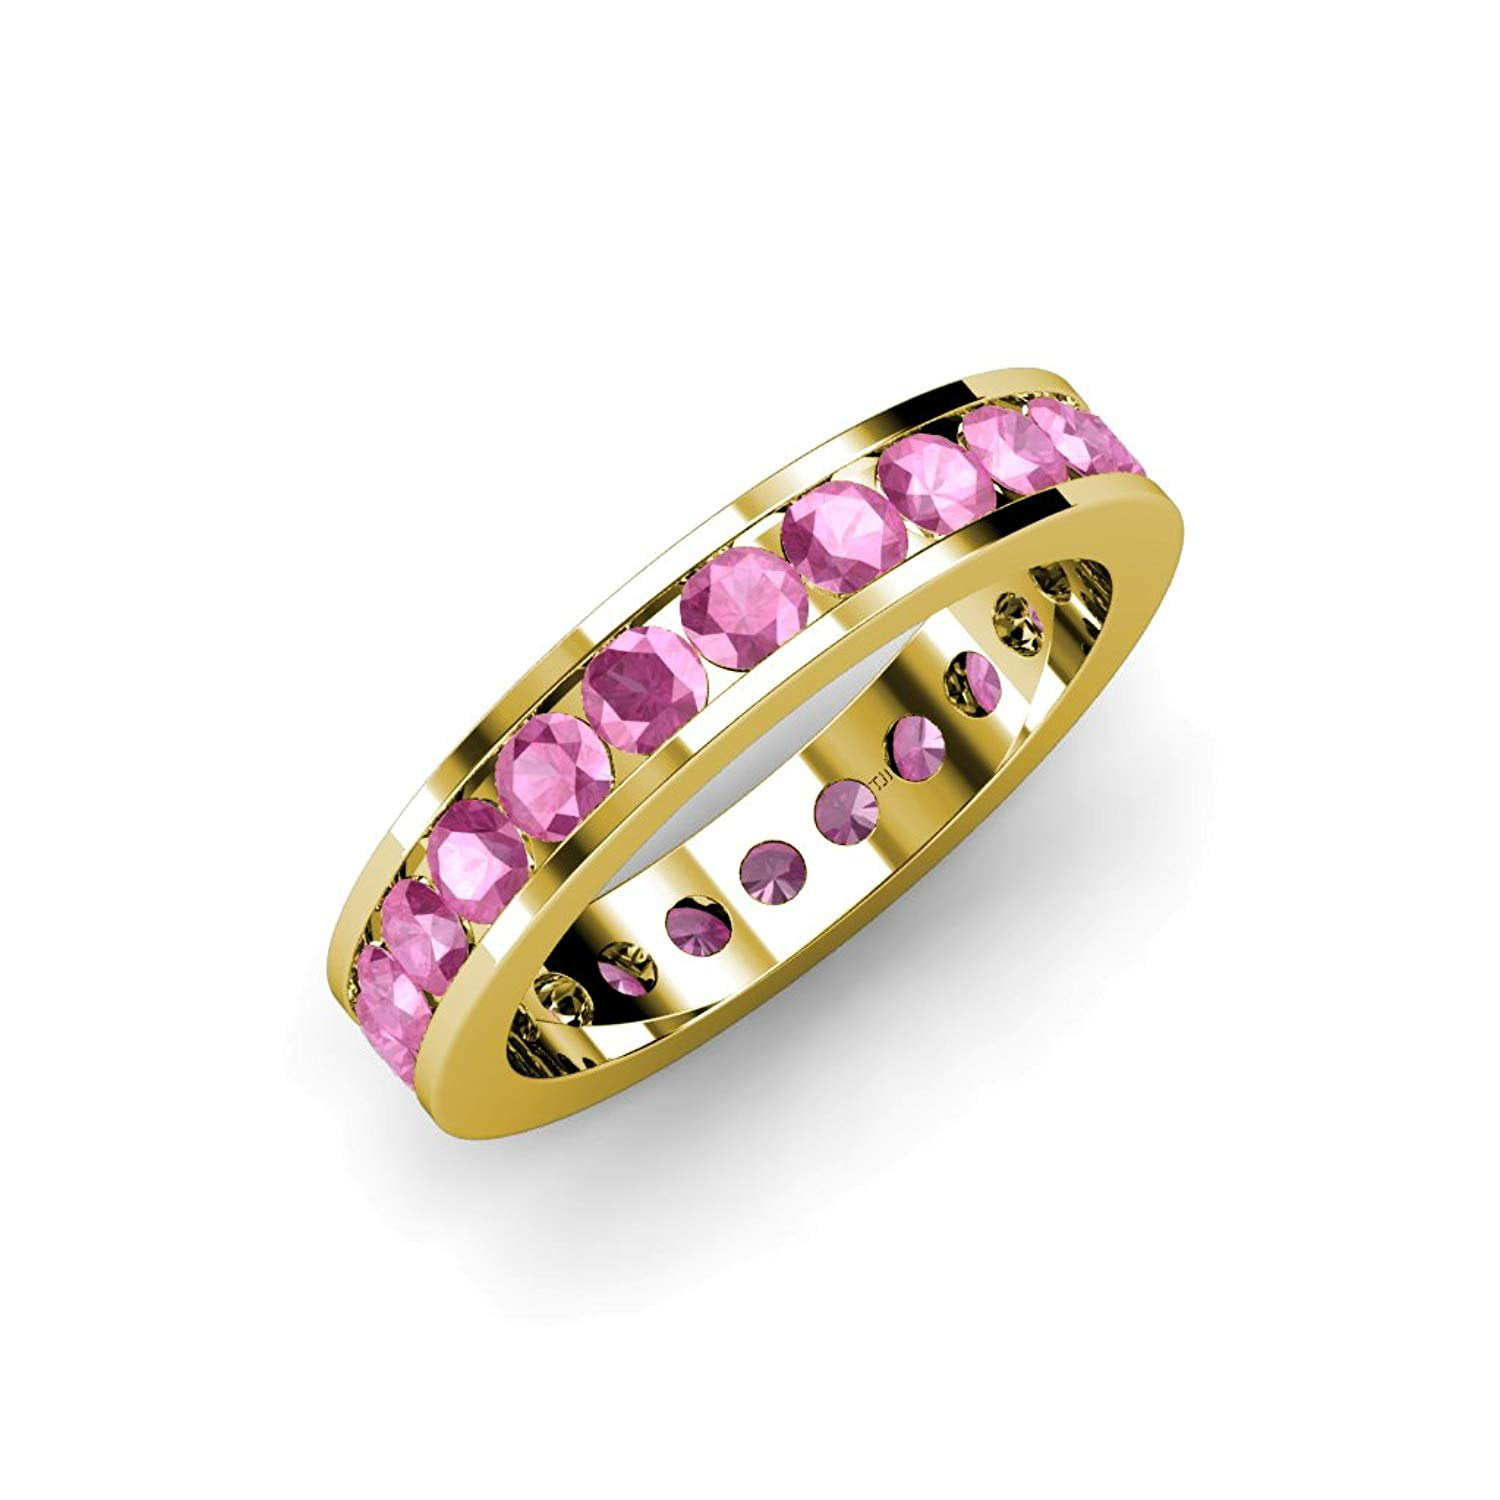 Pink Sapphire Channel Set Eternity Band 2.86 ct tw to 3.36 ct tw in 14K Yellow Gold.size 5.0 by TriJewels